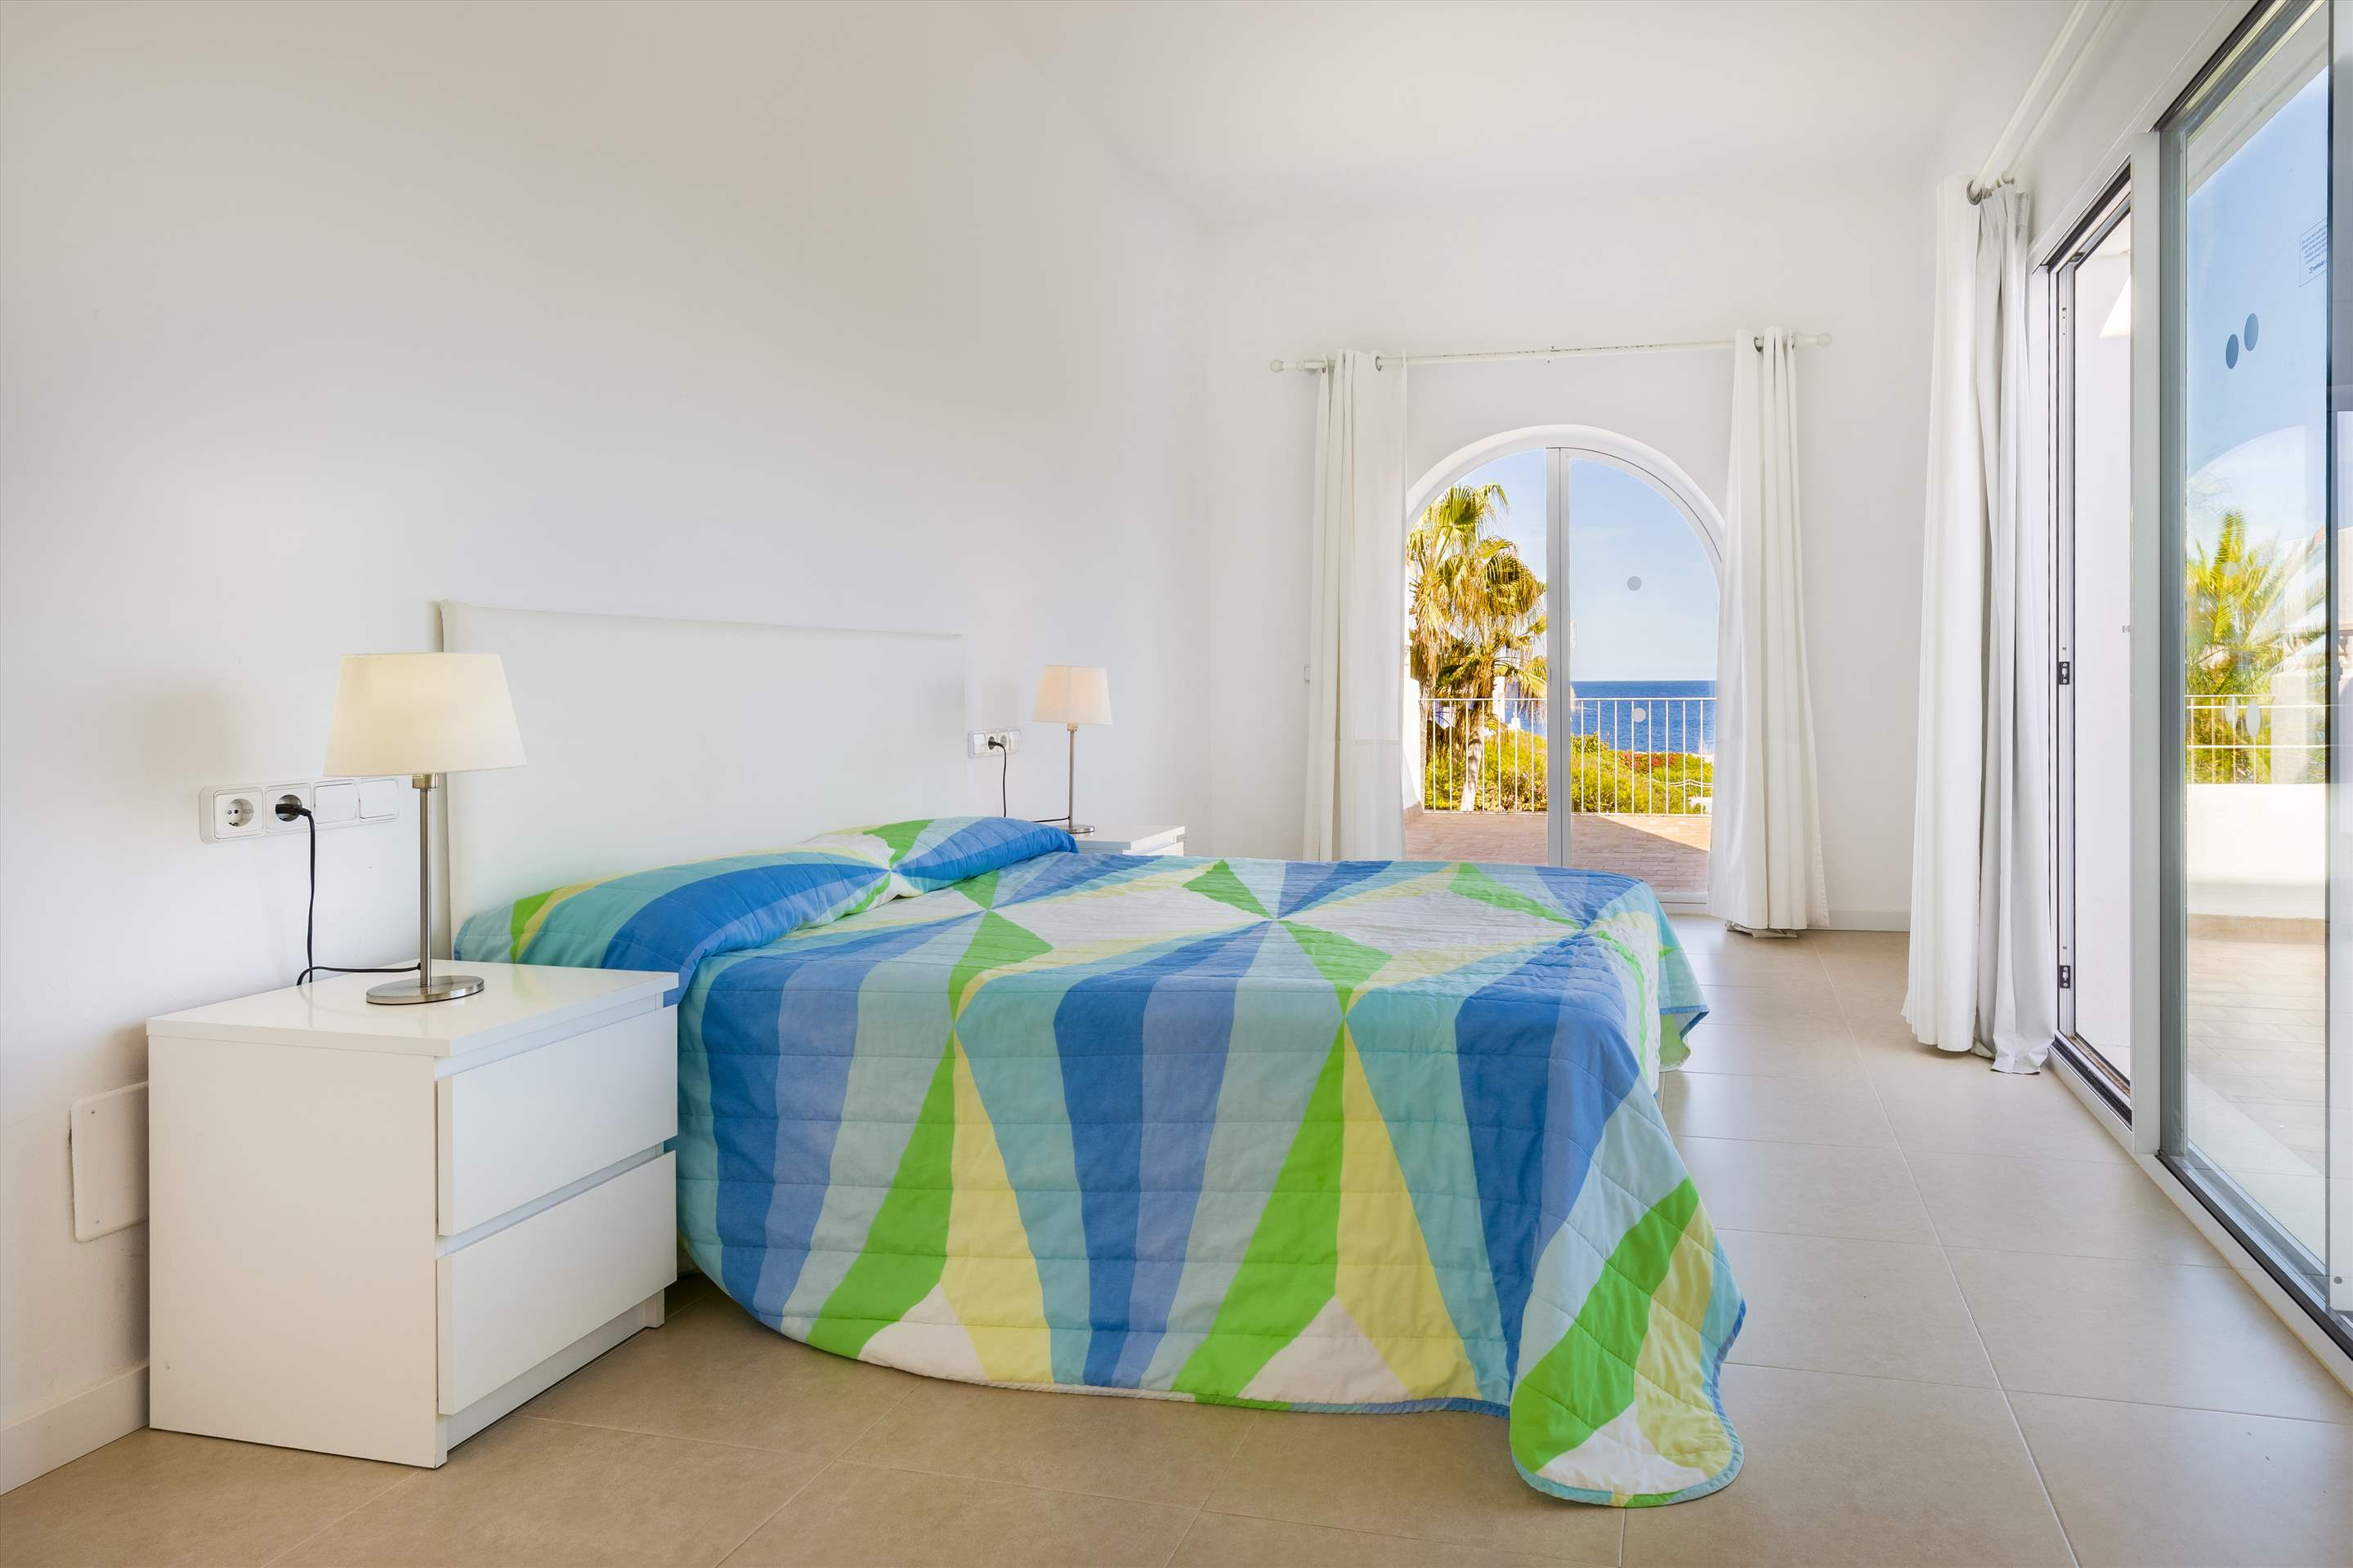 Mar Gran, 4 bedroom villa in Cala d'Or , Majorca Photo #15